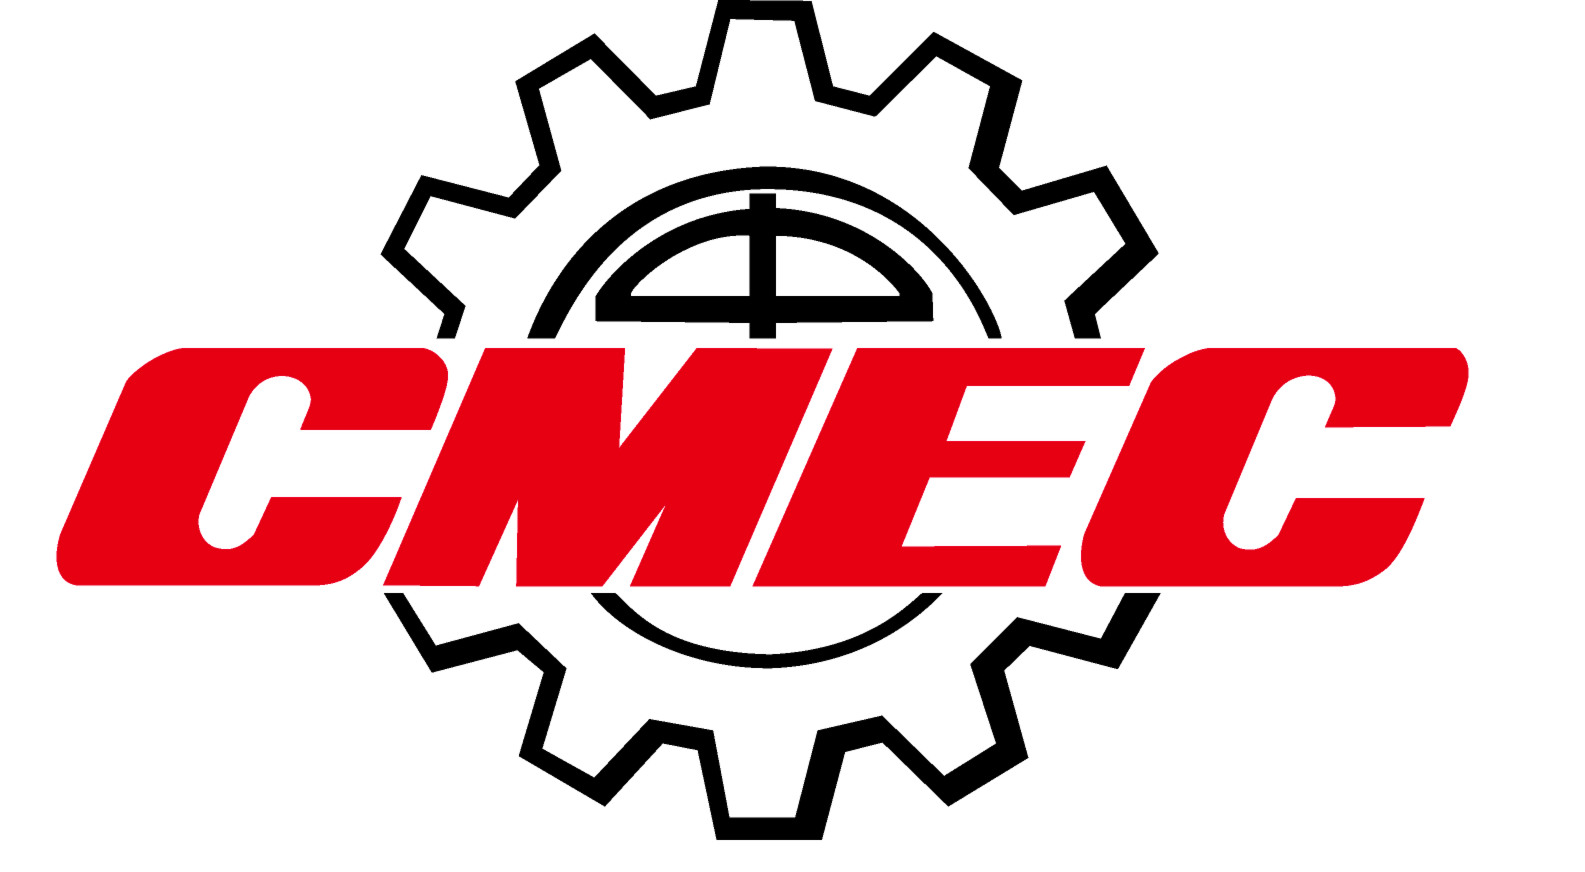 CMEC Engineering